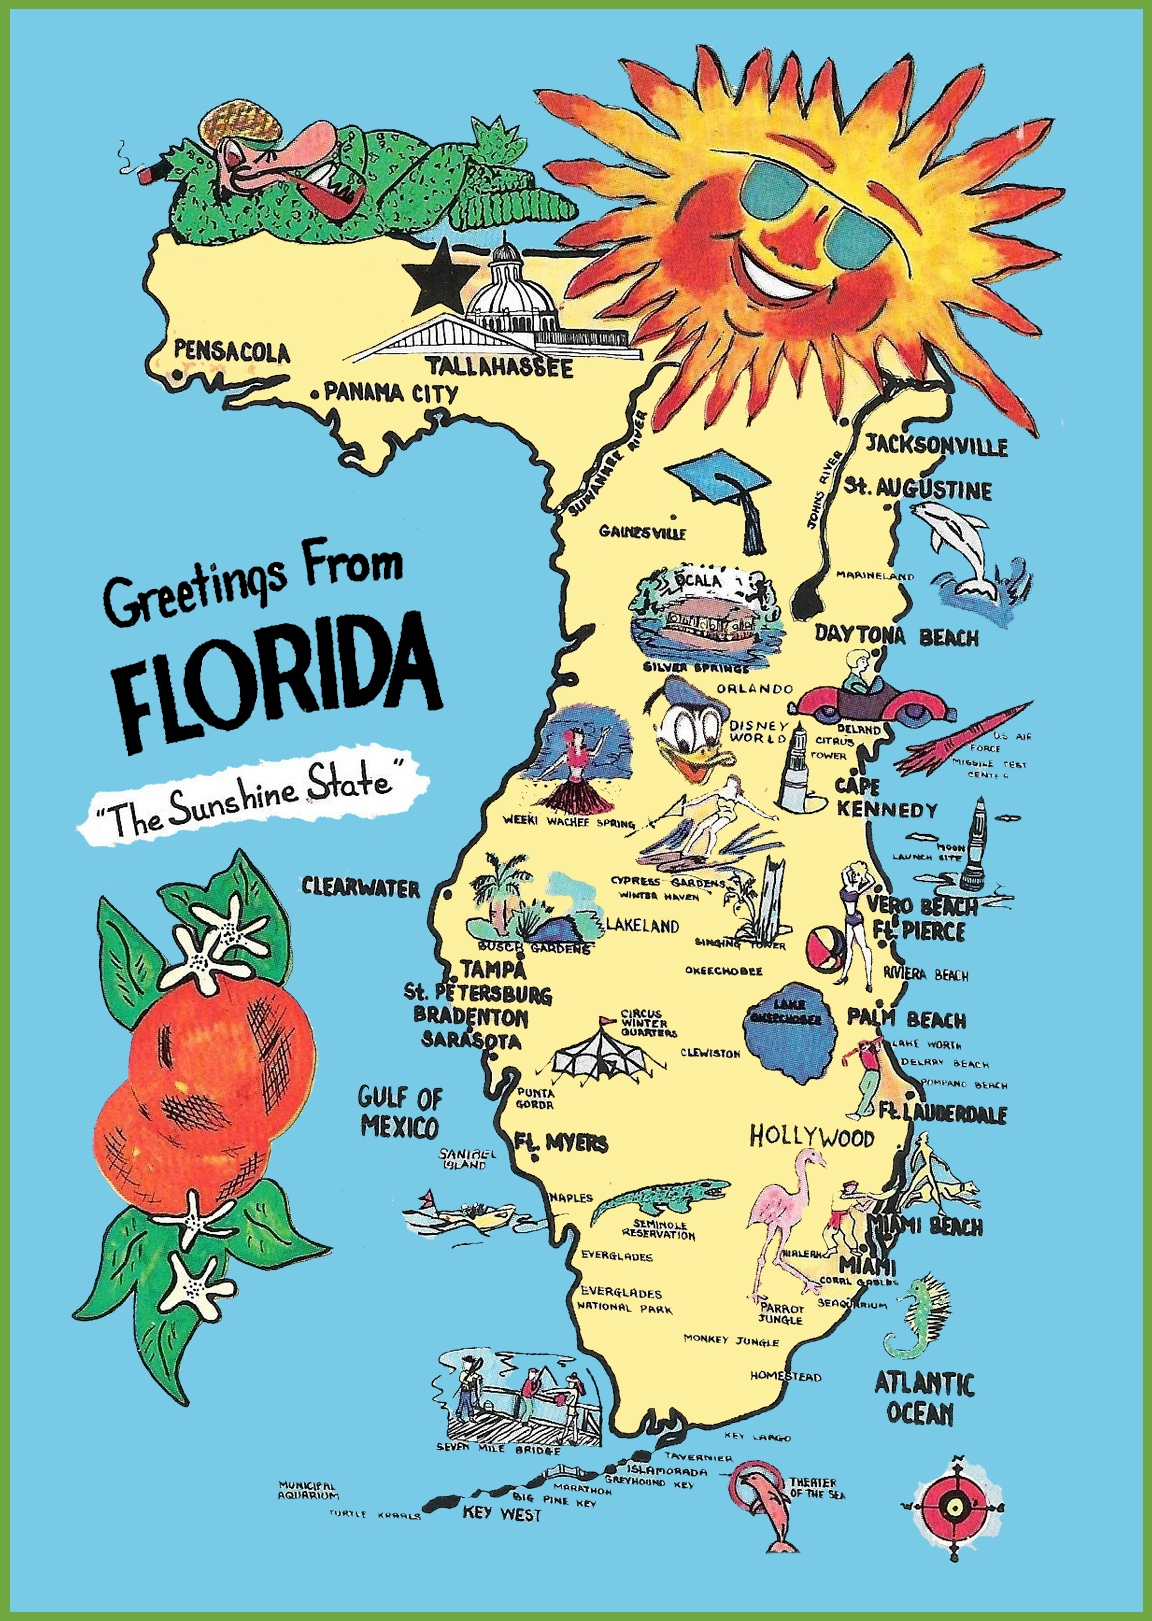 Pictorial Travel Map Of Florida - Florida Destinations Map